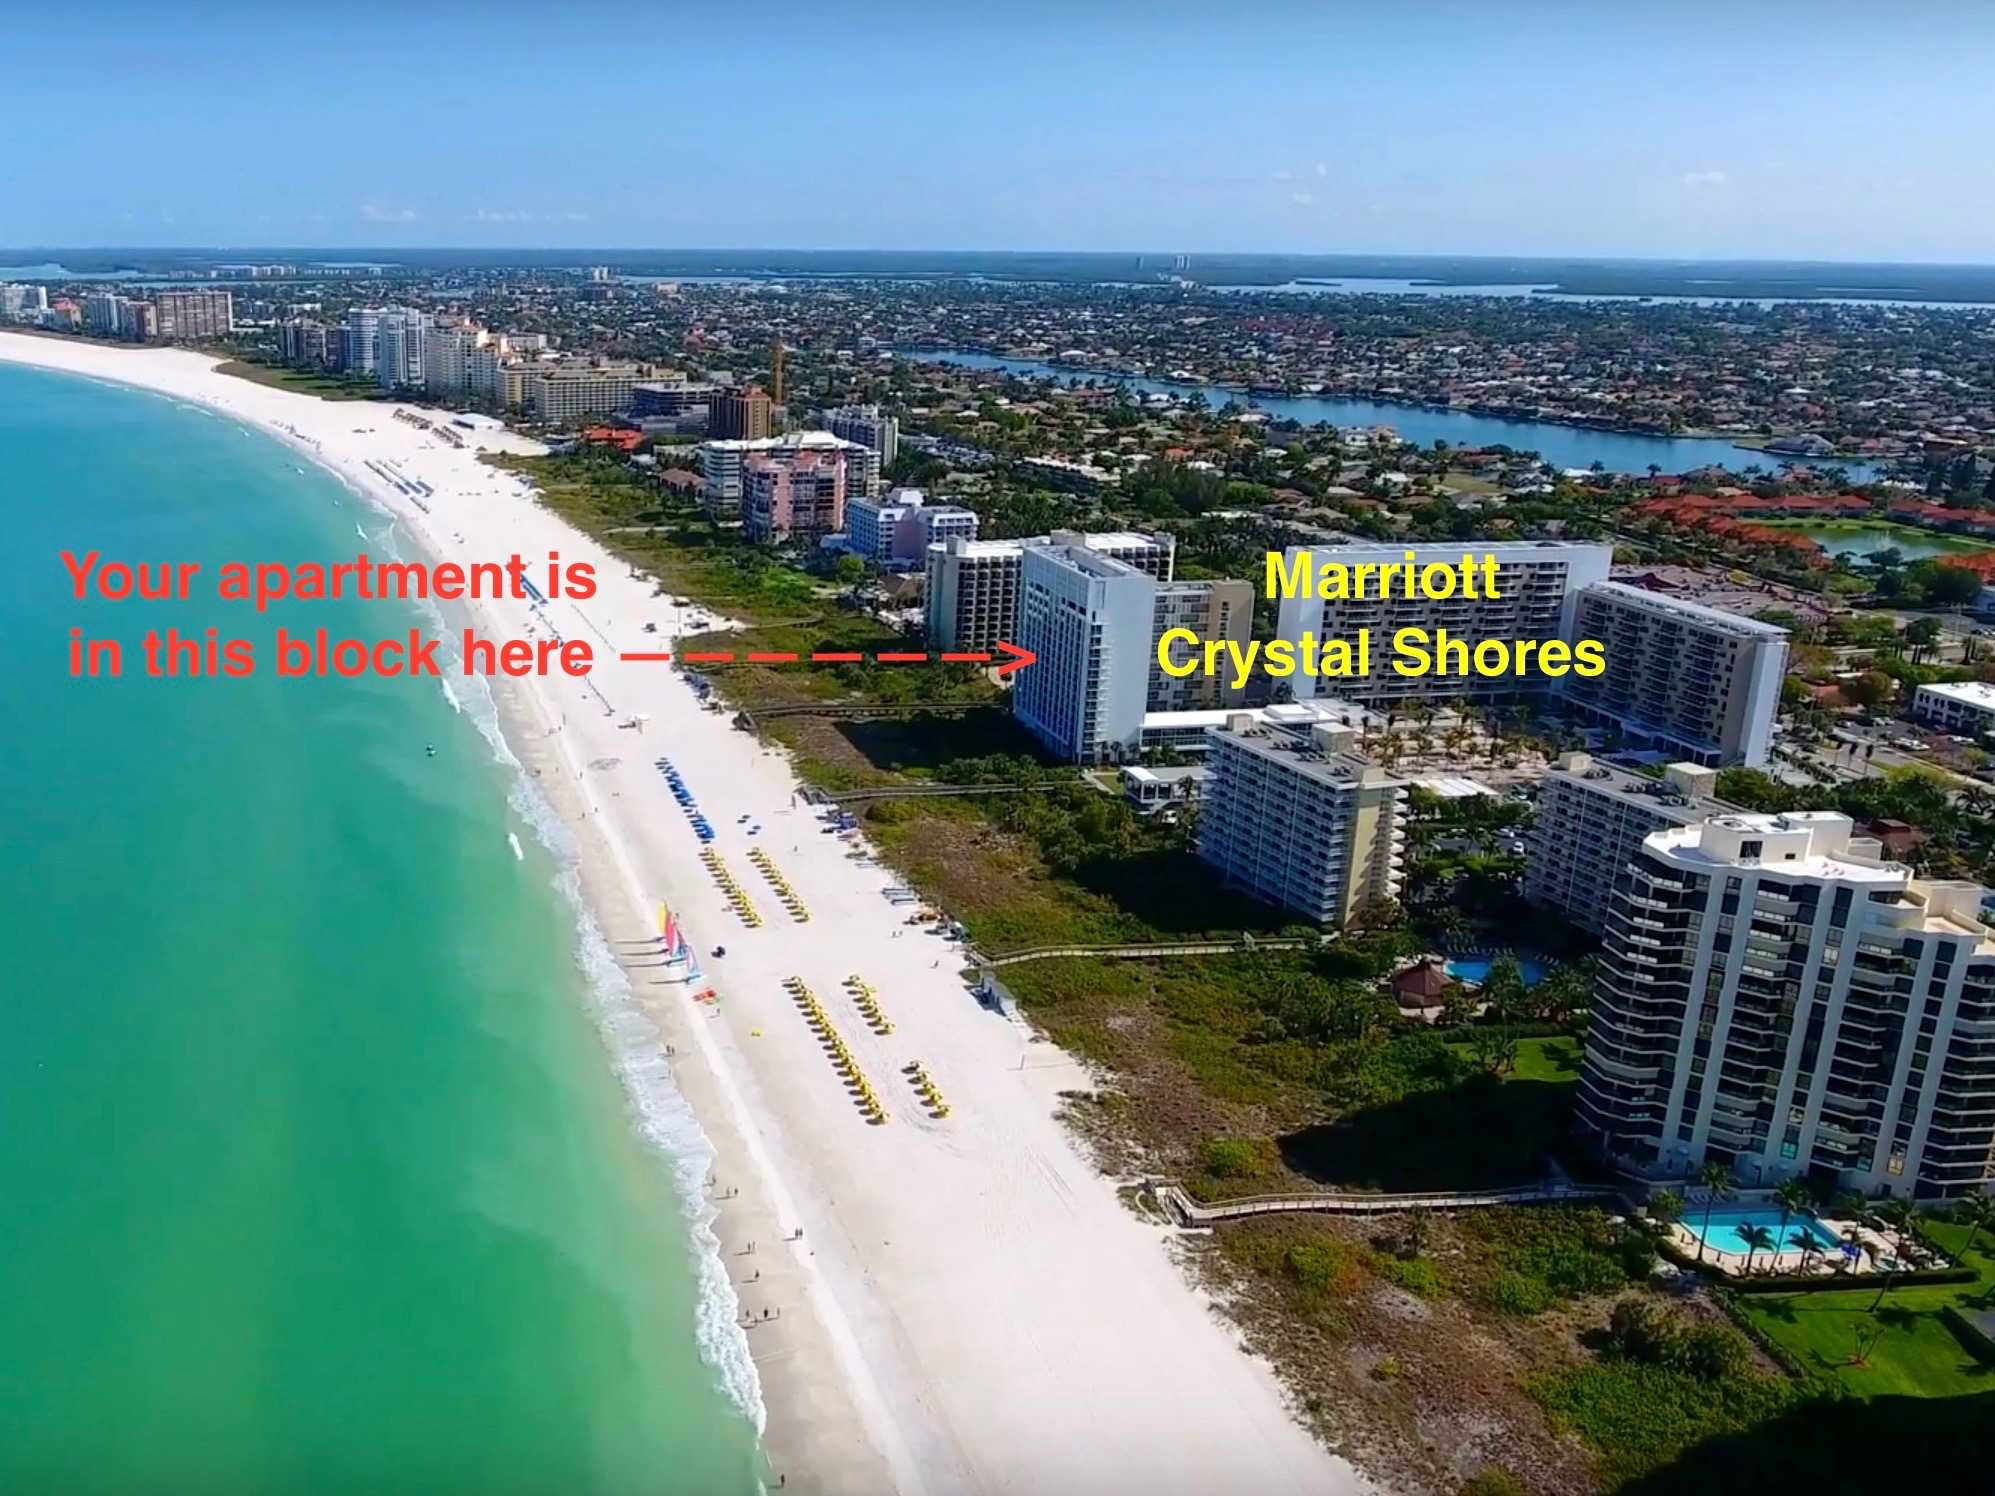 Marco Island Beachfront Apartments